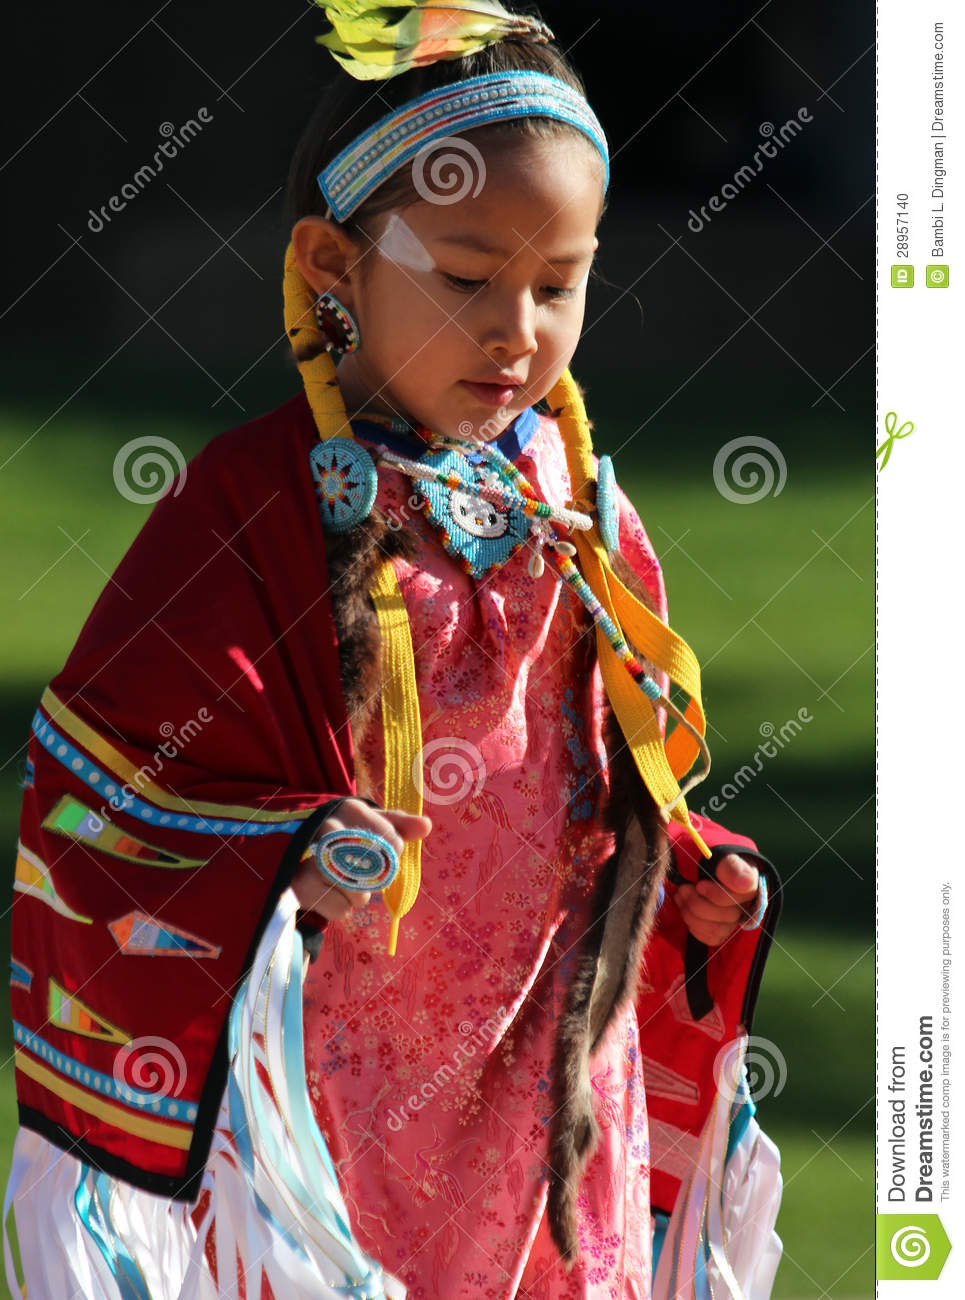 Young native american girl casually